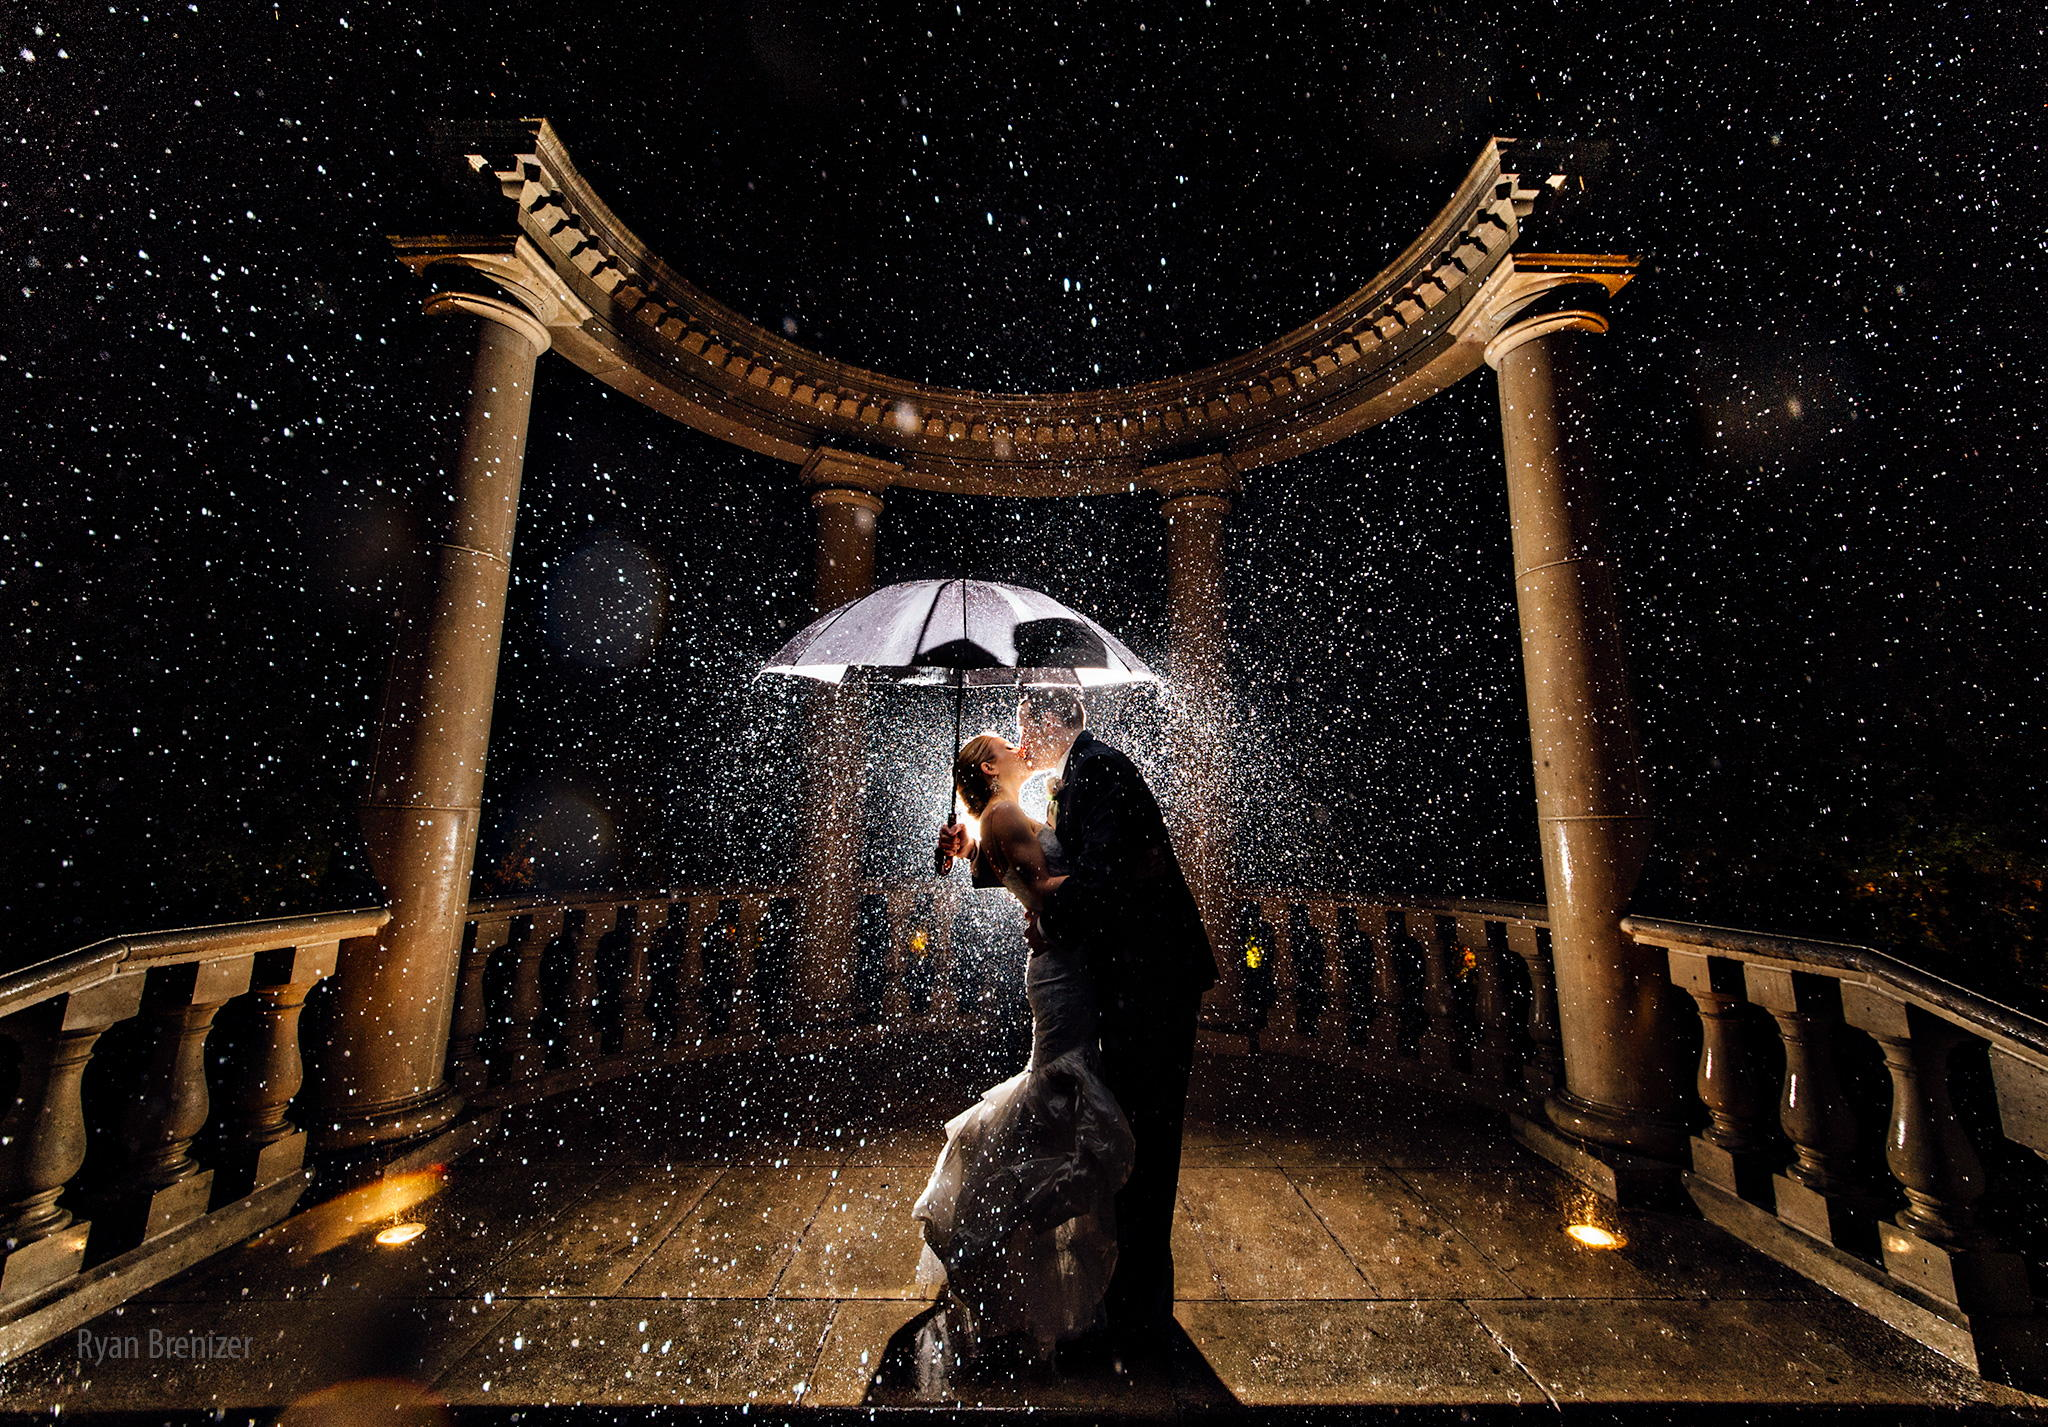 Best of 2014: Top 10 Wedding Photos